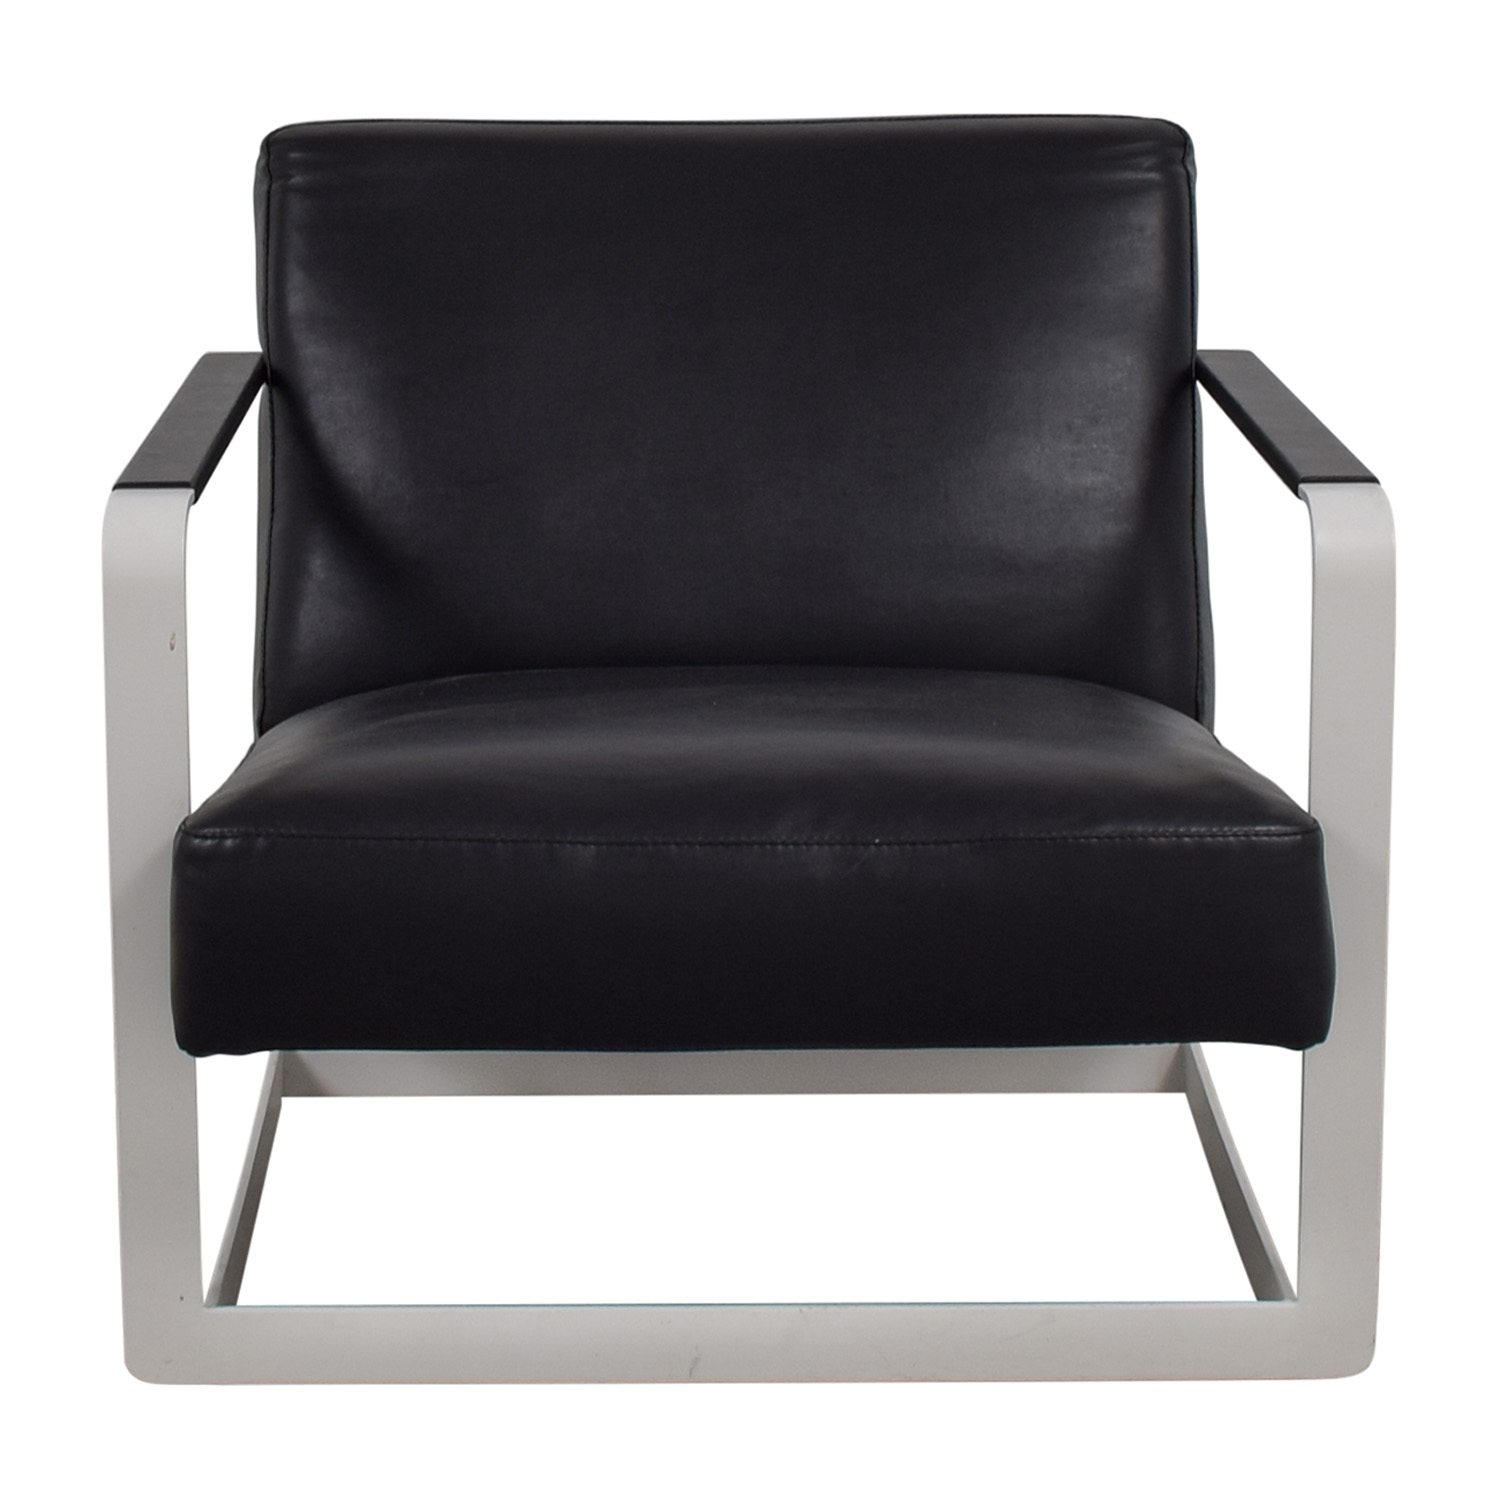 buy Modloft Crosby Black and White Lounge Chair Modloft Accent Chairs